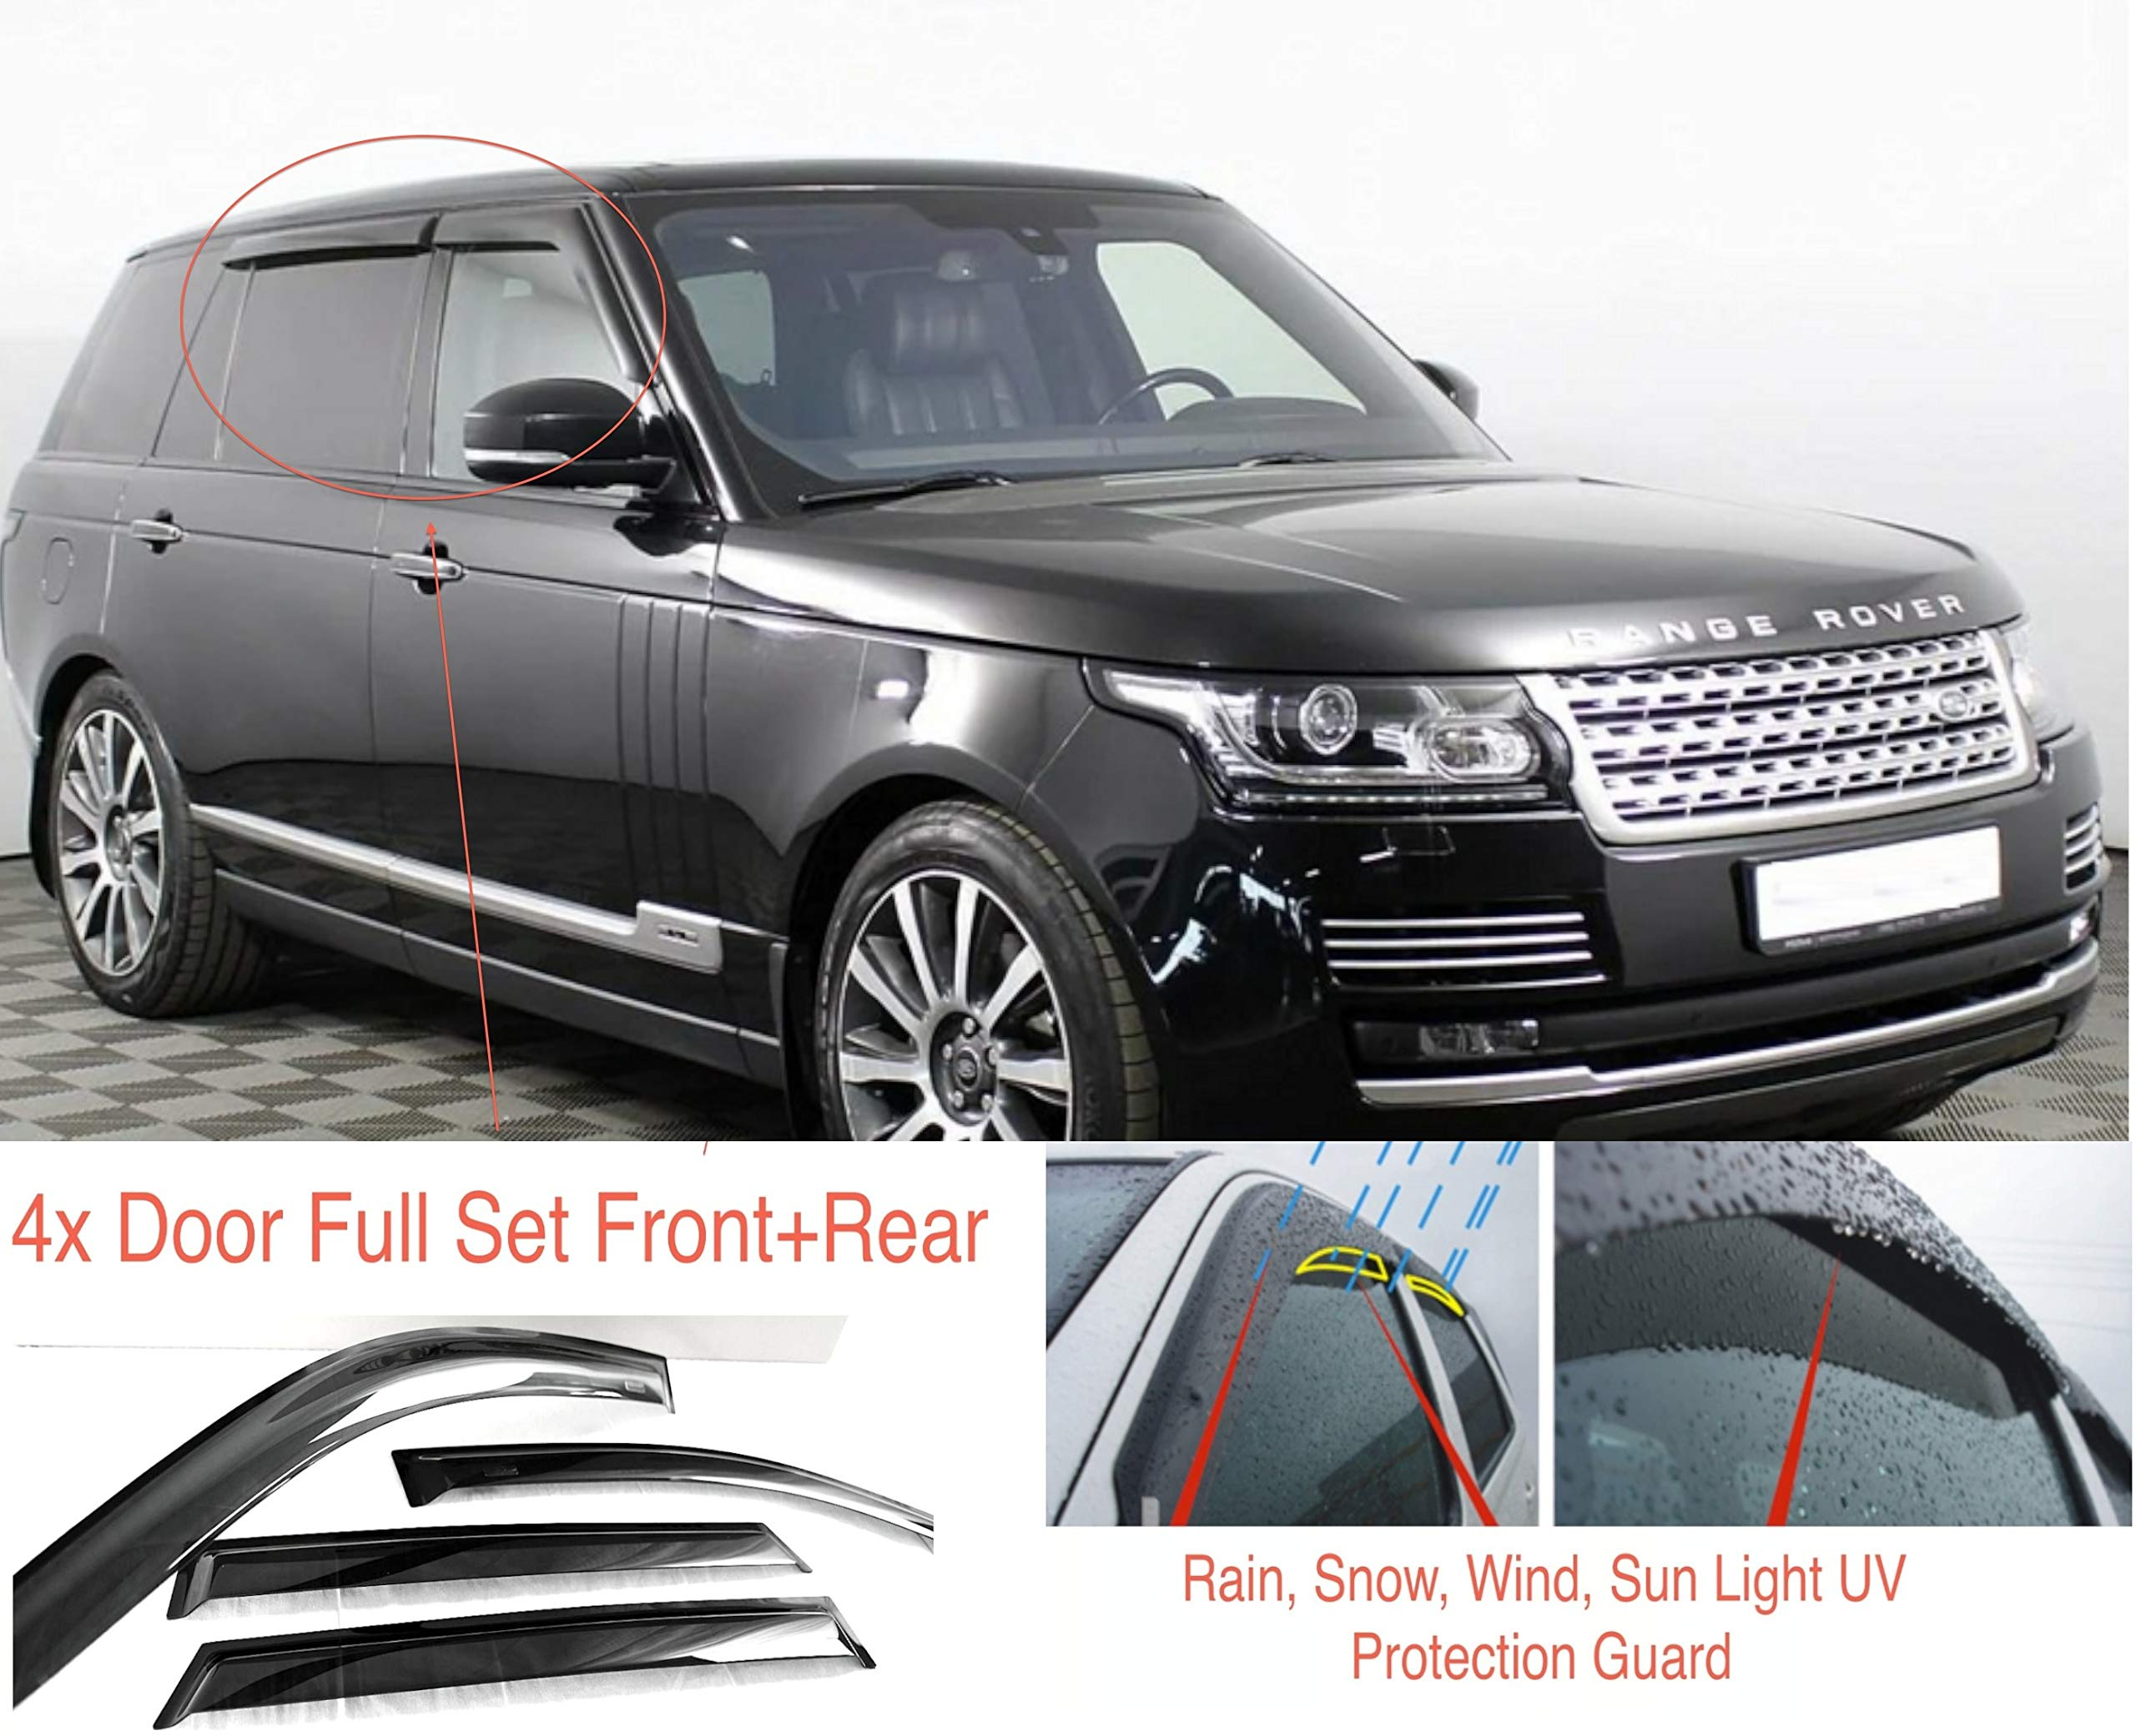 AC WOW 4x Wind Deflectors Compatible with Range Rover Vogue L405 5-door 2012 2013 2014 2015 2016 2017 2018 2019 2020 onwards Acrylic Glass WeatherShields Visors